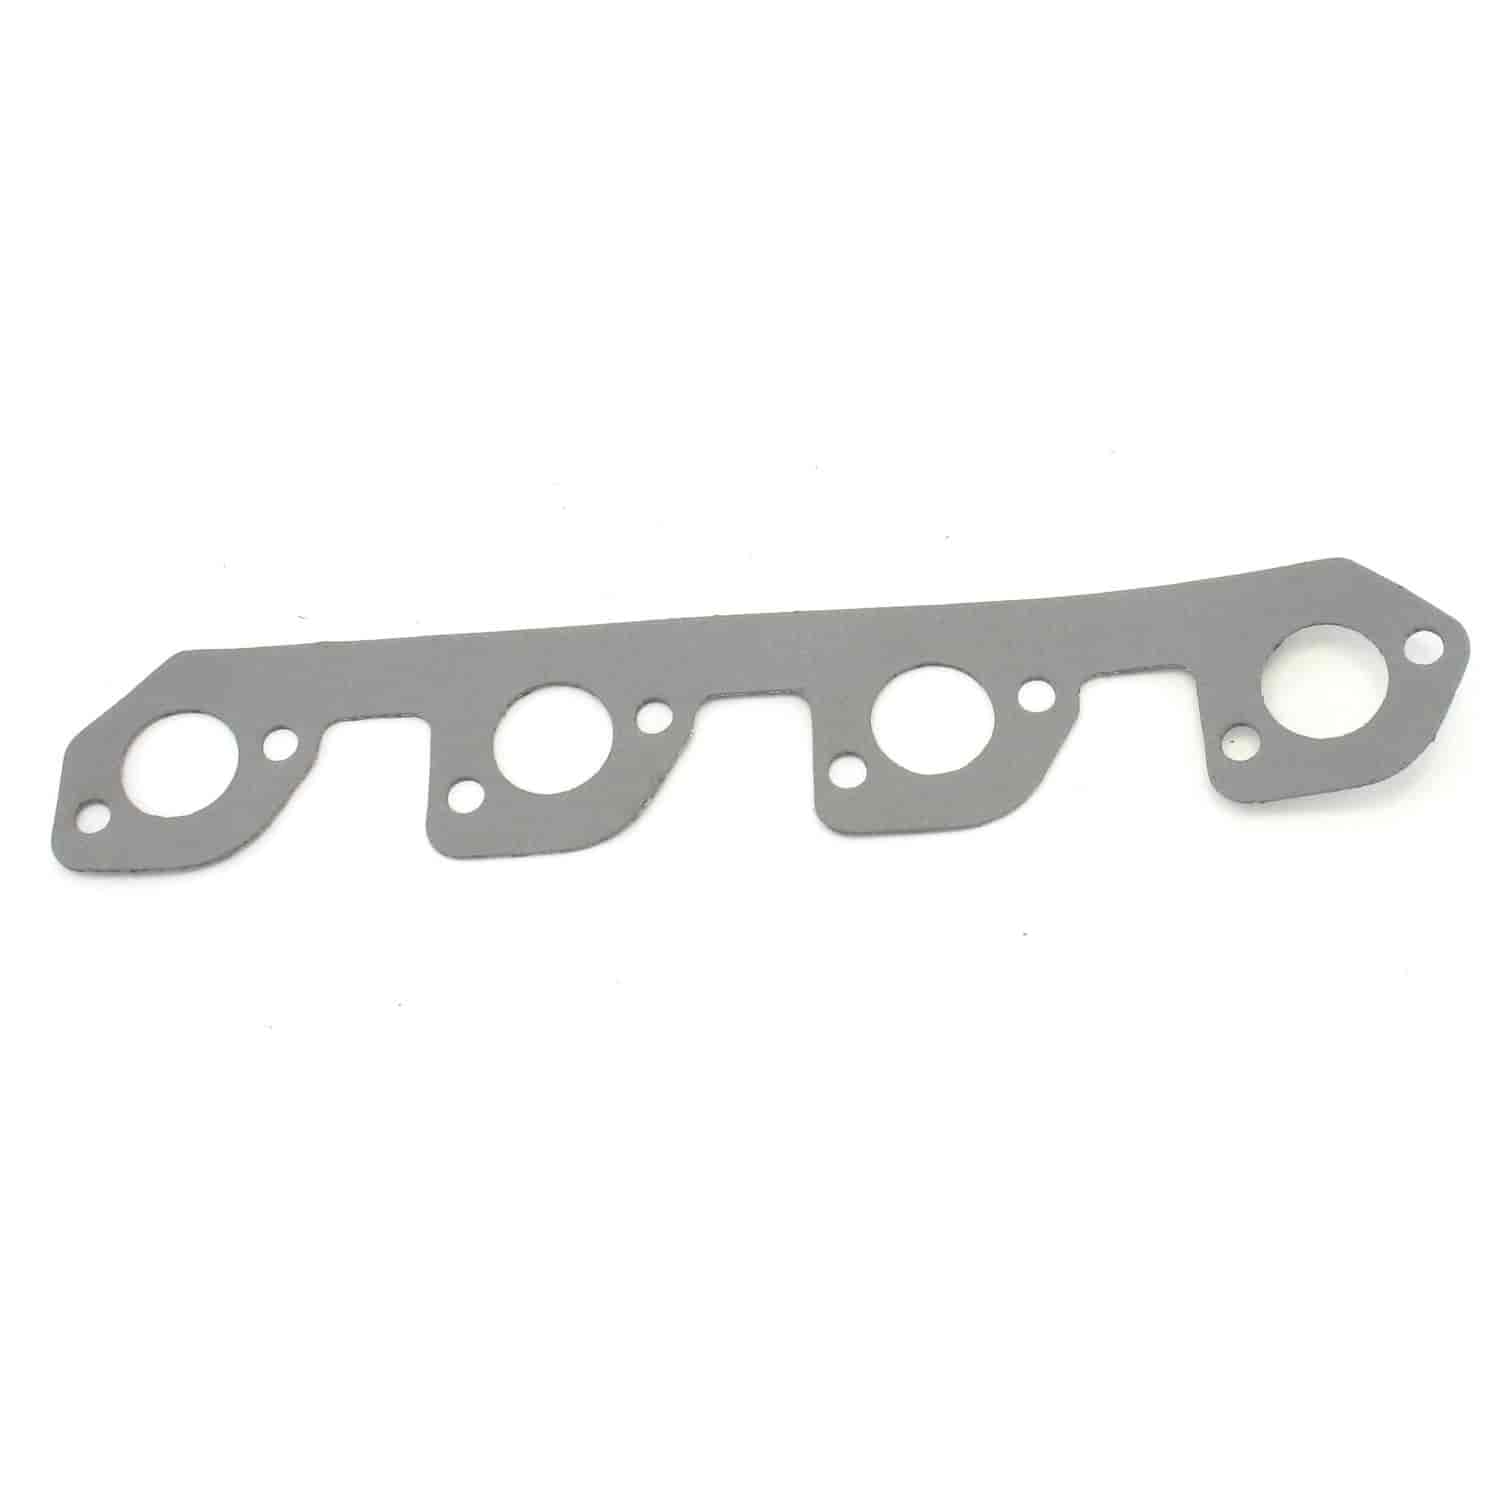 Patriot Exhaust H7506 - Patriot Exhaust Header Flange Gaskets